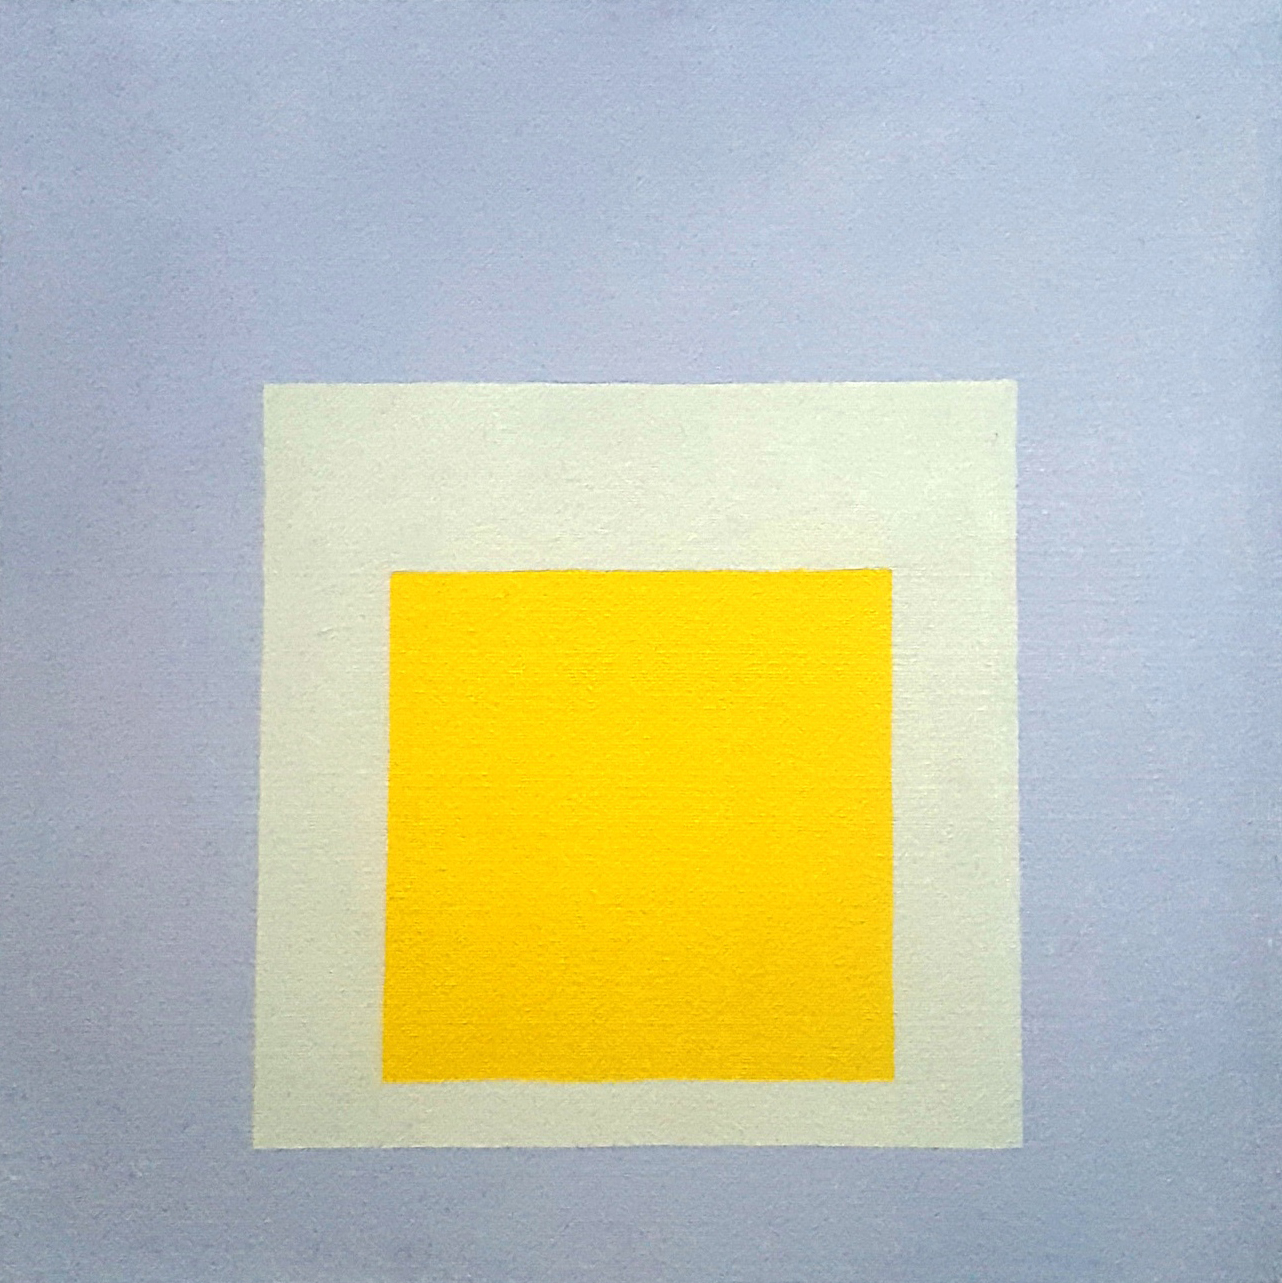 Josef Albers, Study for Homage to the Square: Centered Yellow, 1964 © VG Bild-Kunst, Bonn 2019